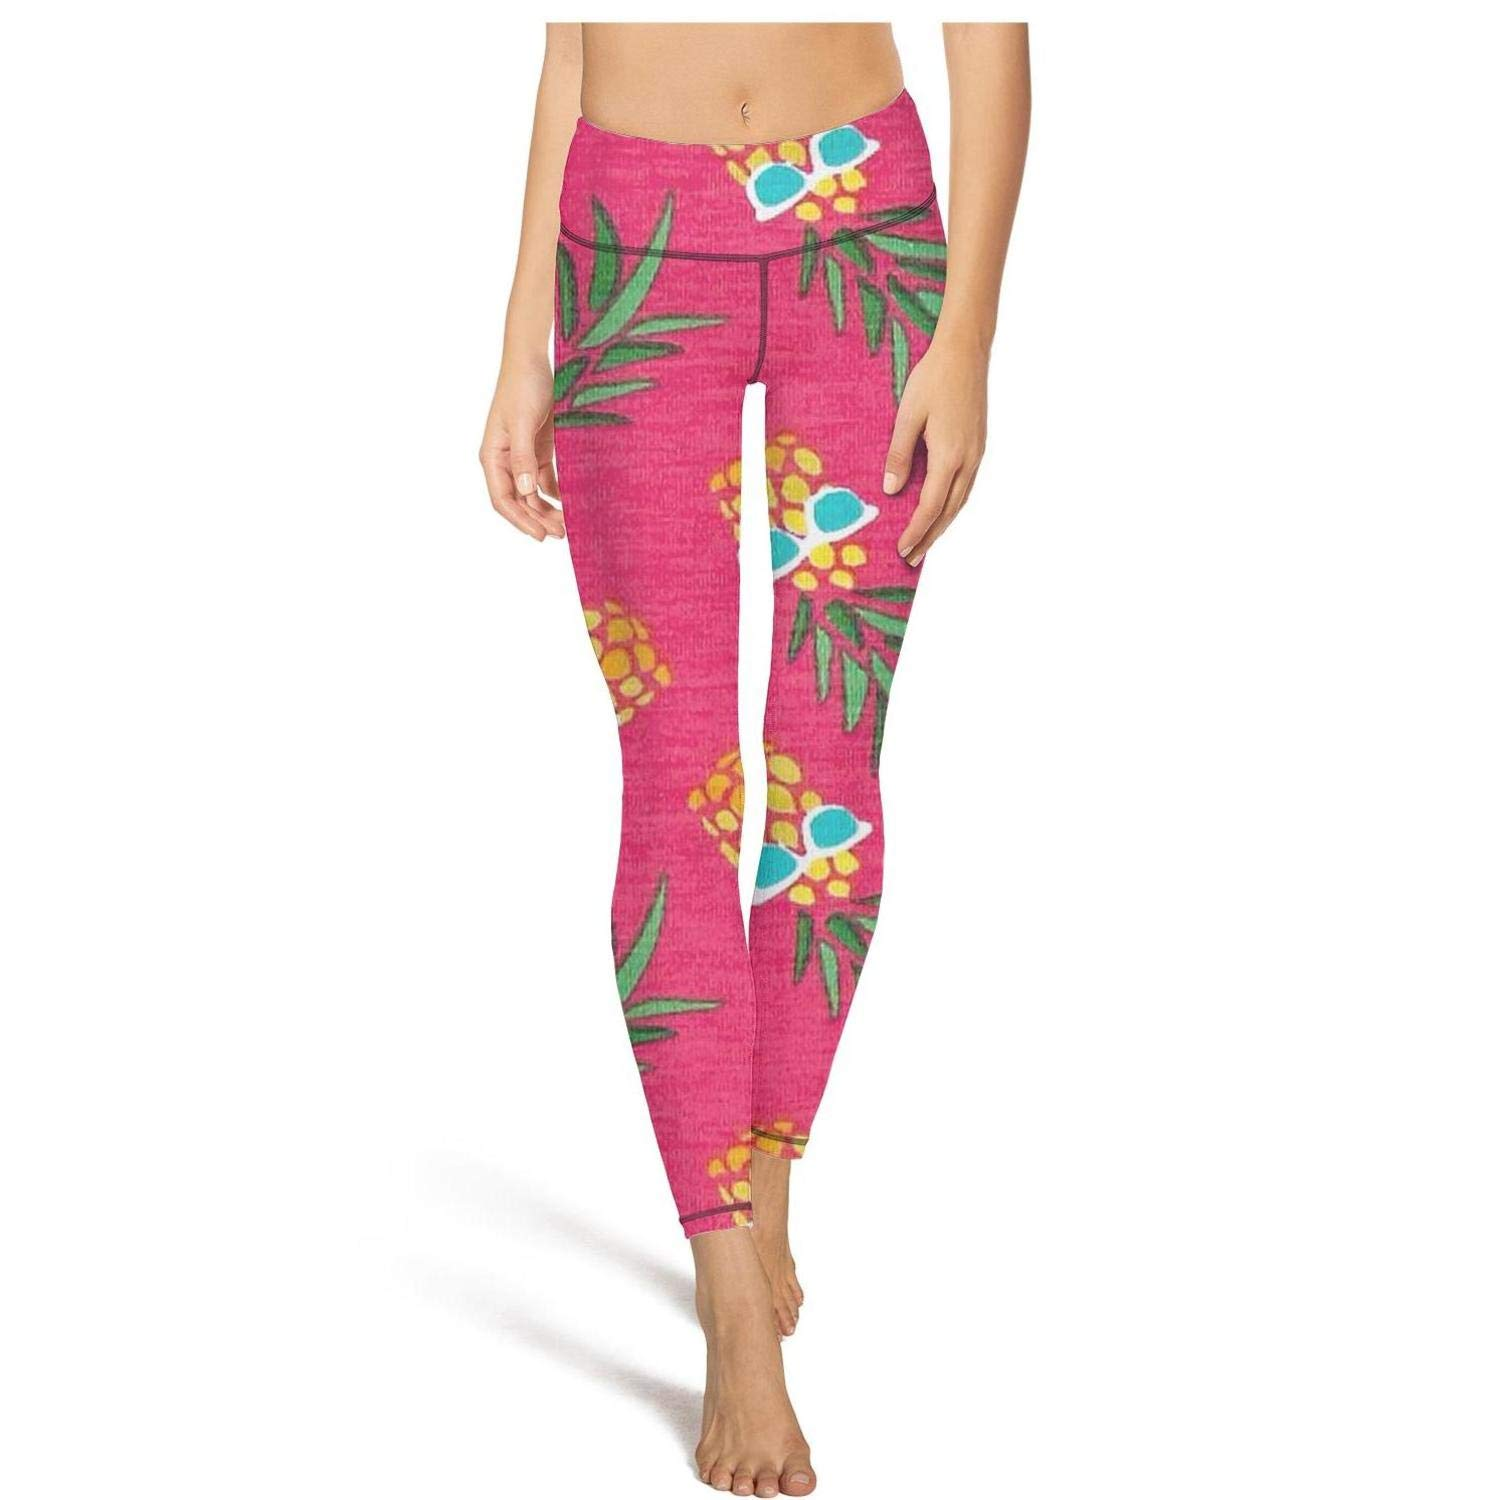 Hamily Broderei Women's Yoga Leggings Pineapples with Glasses Pink Exercise Workout Pants Gym Tights